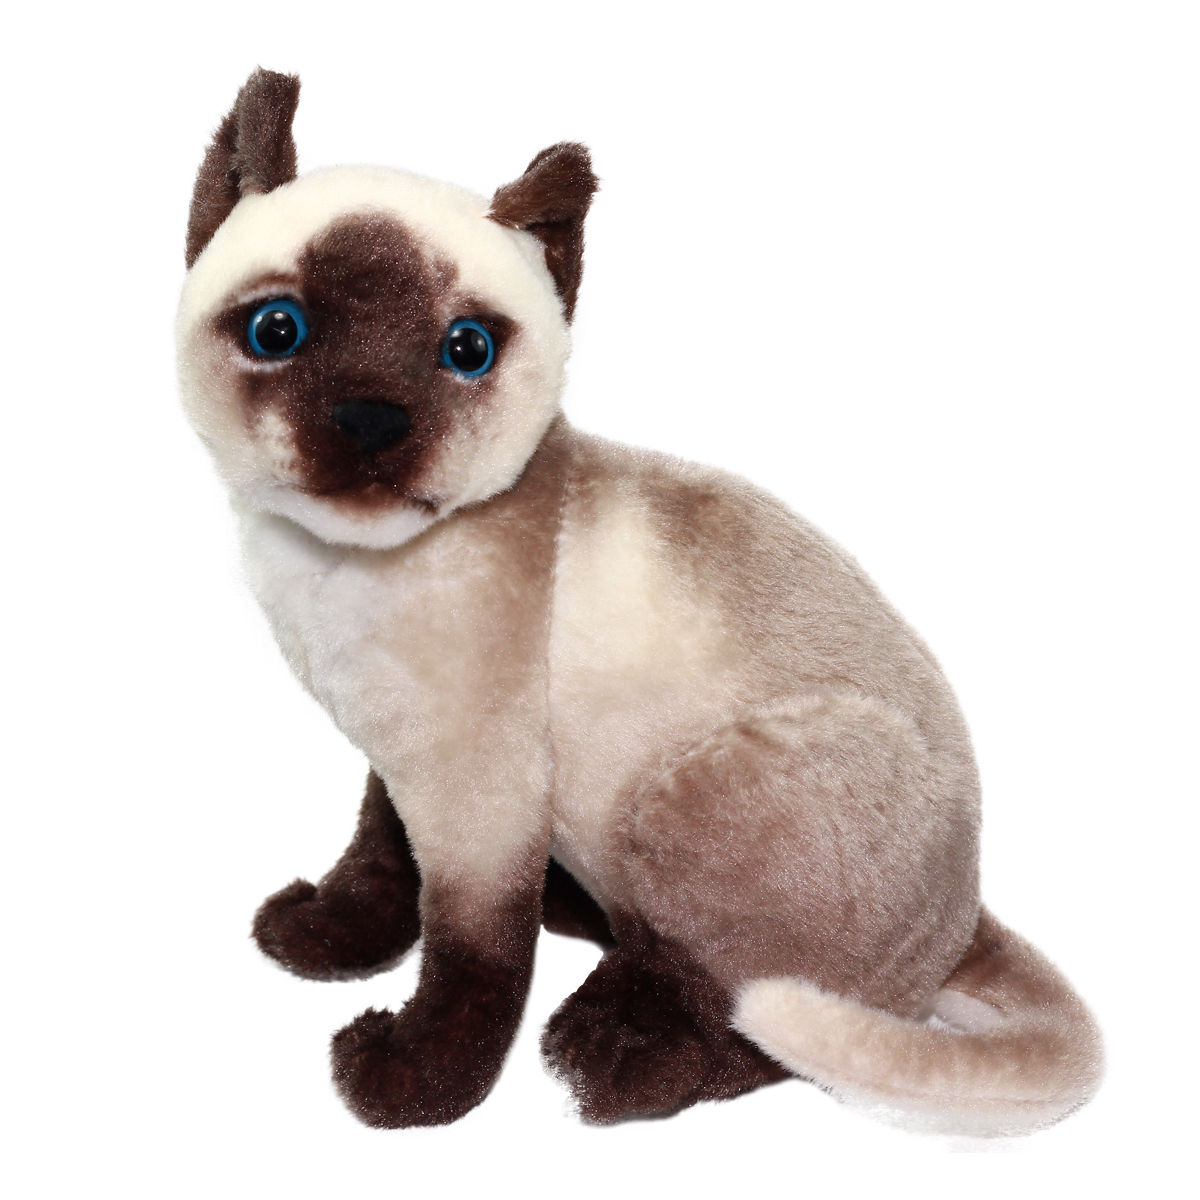 Real Cat Plush Collection Stuffed Animal Toy Brown Siamese Cat 10 Inches